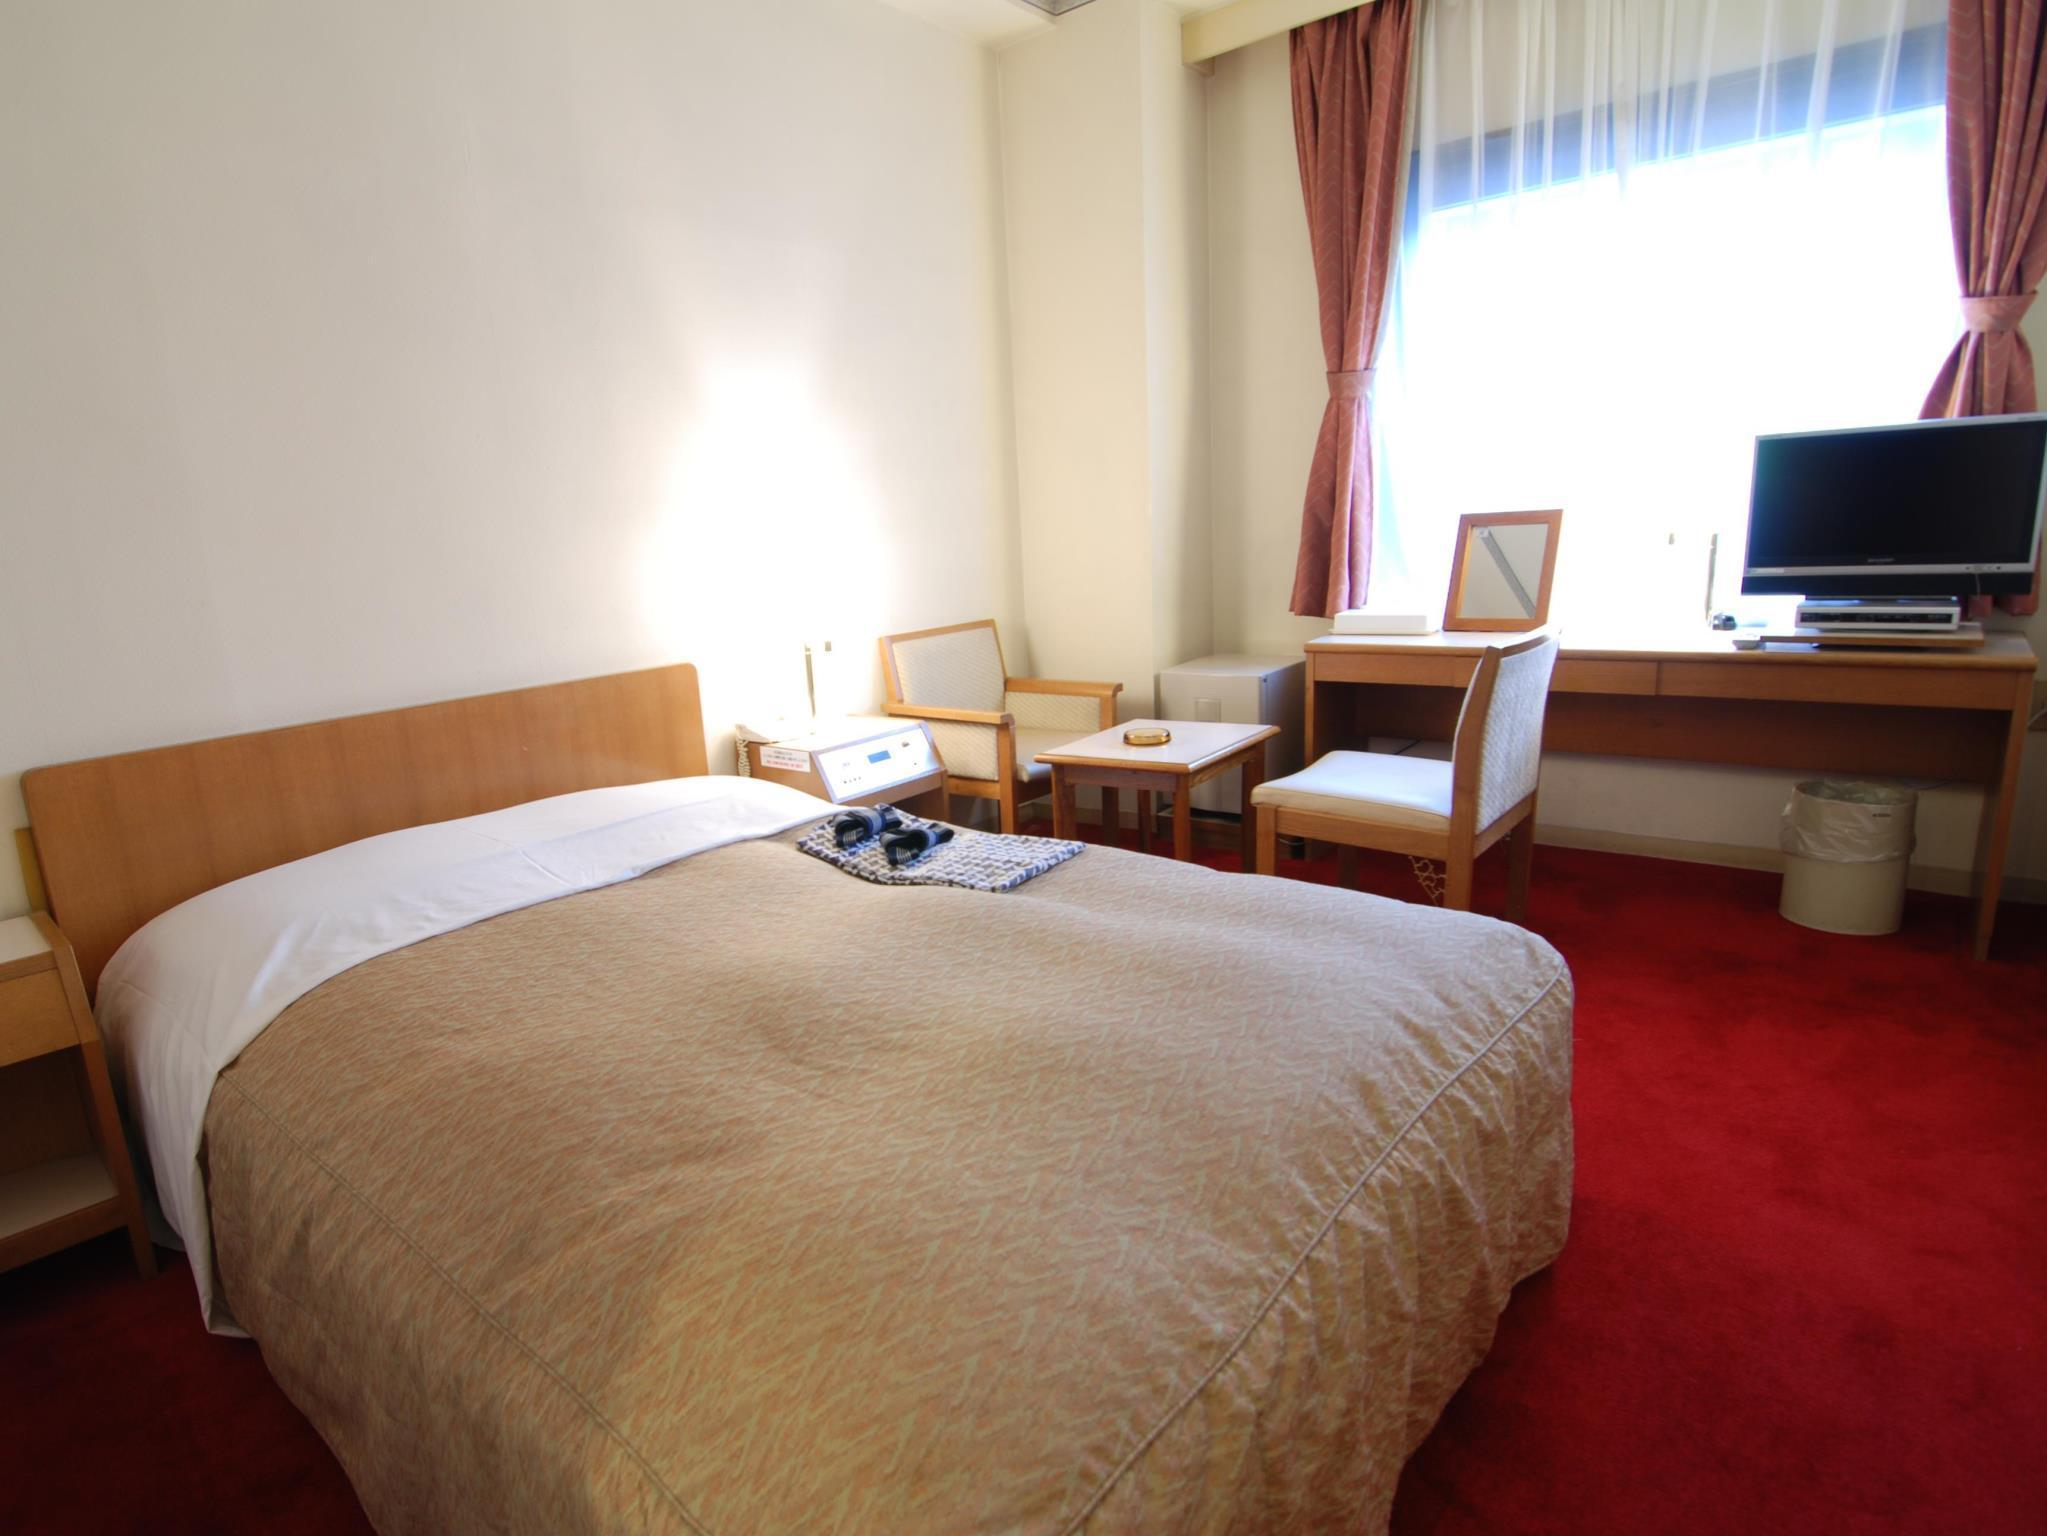 Double Room - Non-Smoking, Late Check-Out Until 12:00 PM